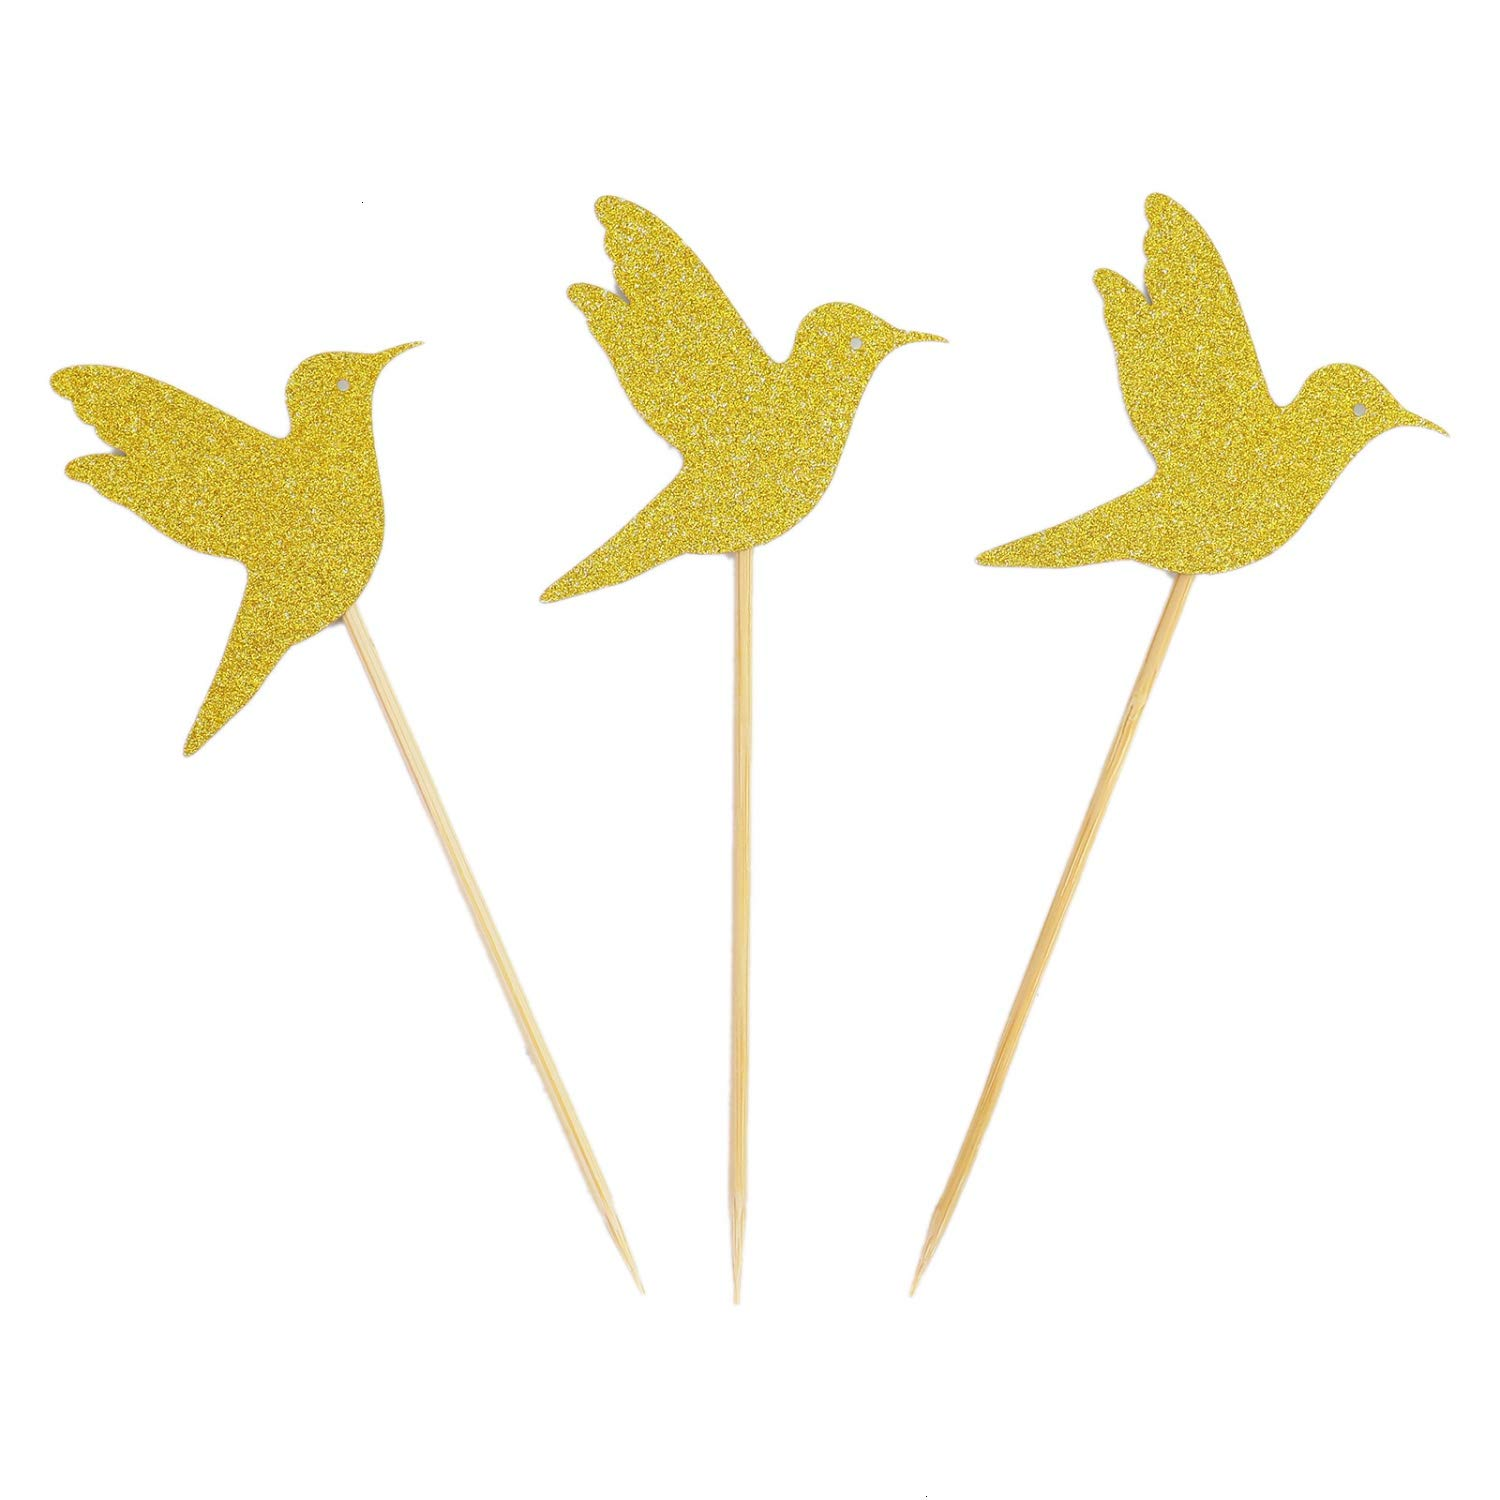 Monrocco 20 Pack Gold Glitter Hummingbird Cupcake Topper Bird Cupcake Picks for Birthday Weddings Decoration